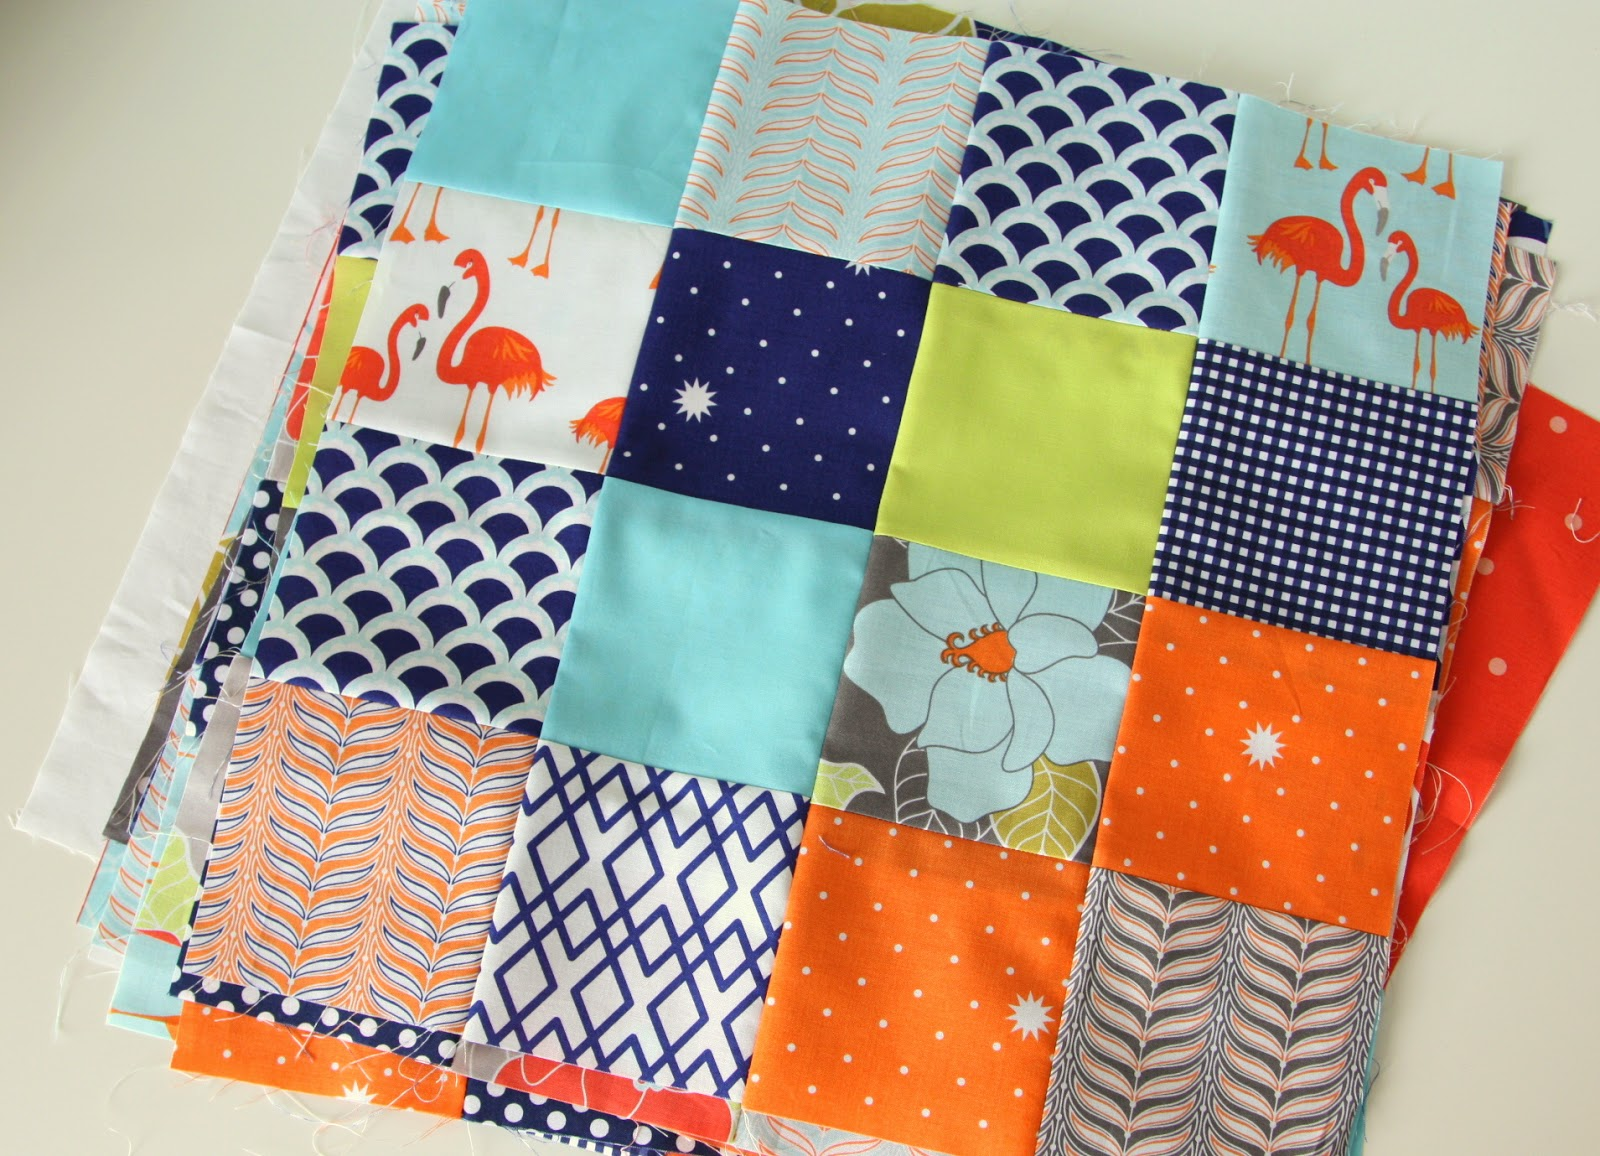 16 Patch Scrappy Quilt Tutorial Diary Of A Quilter A